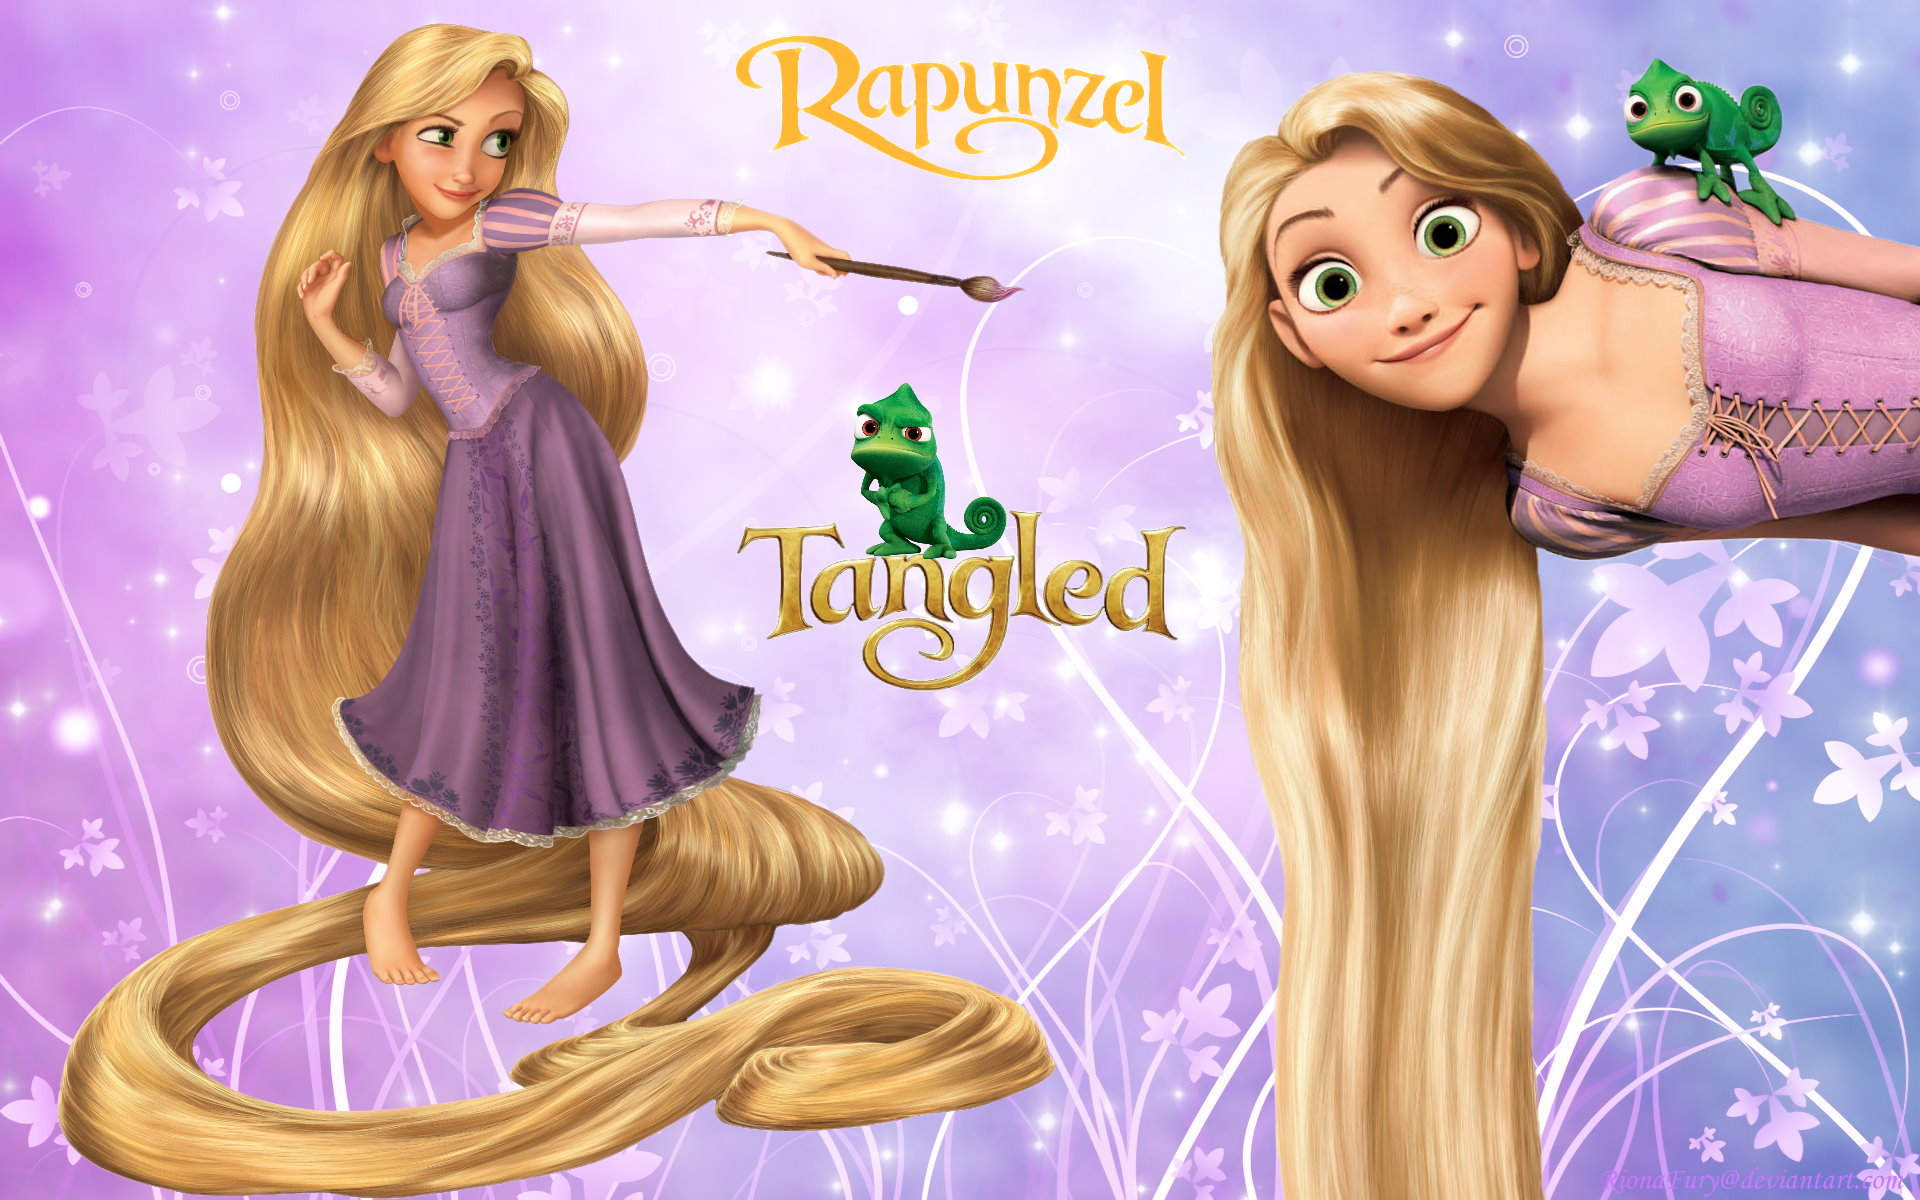 Disney Princess Rapunzel Tangled Wallpaper